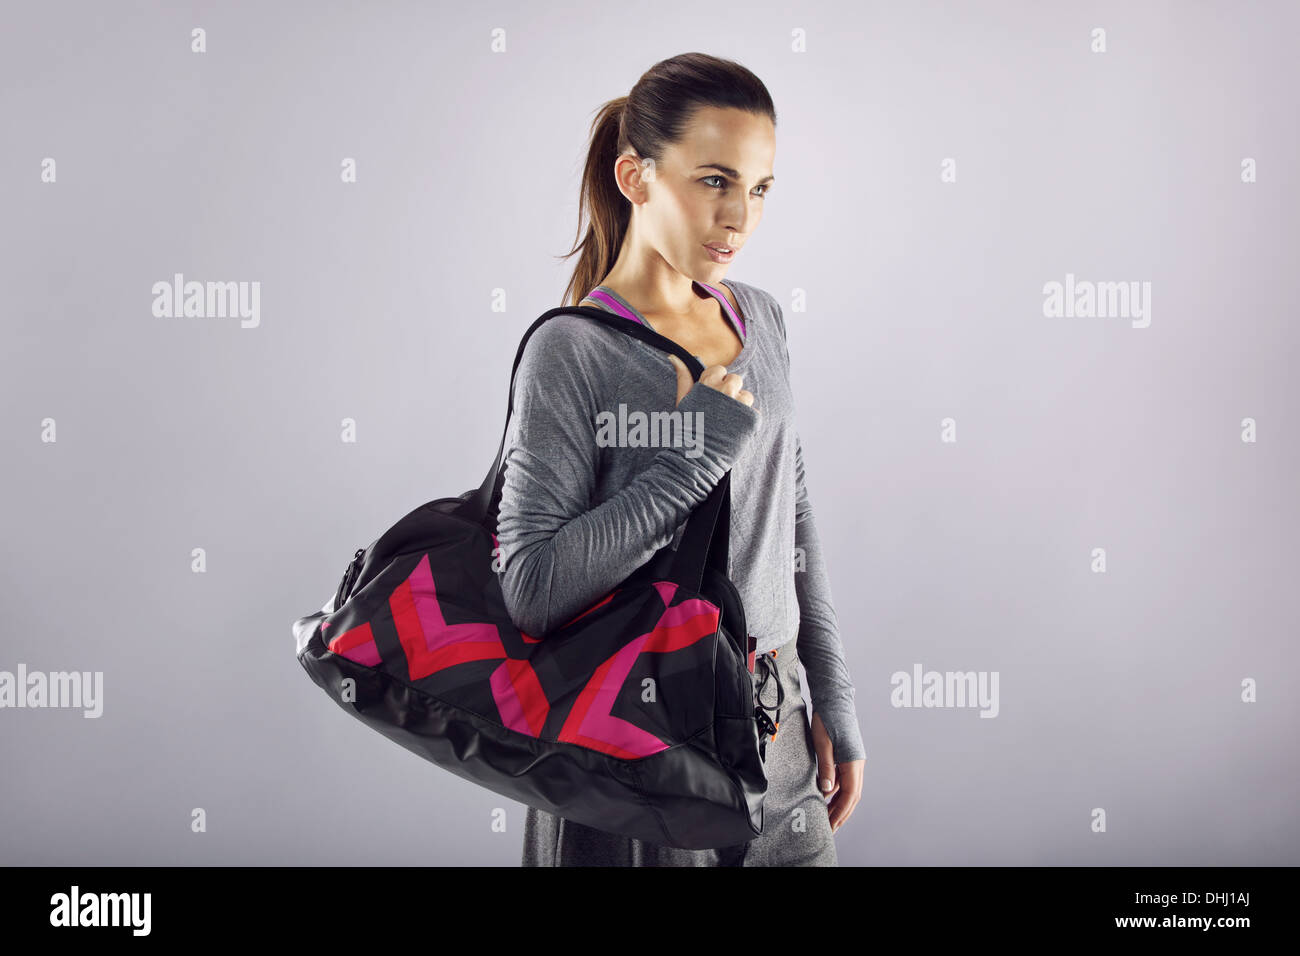 c2dbaa5b Portrait of fit young woman carrying gym bag looking away at copyspace over  grey background. Beautiful caucasian female